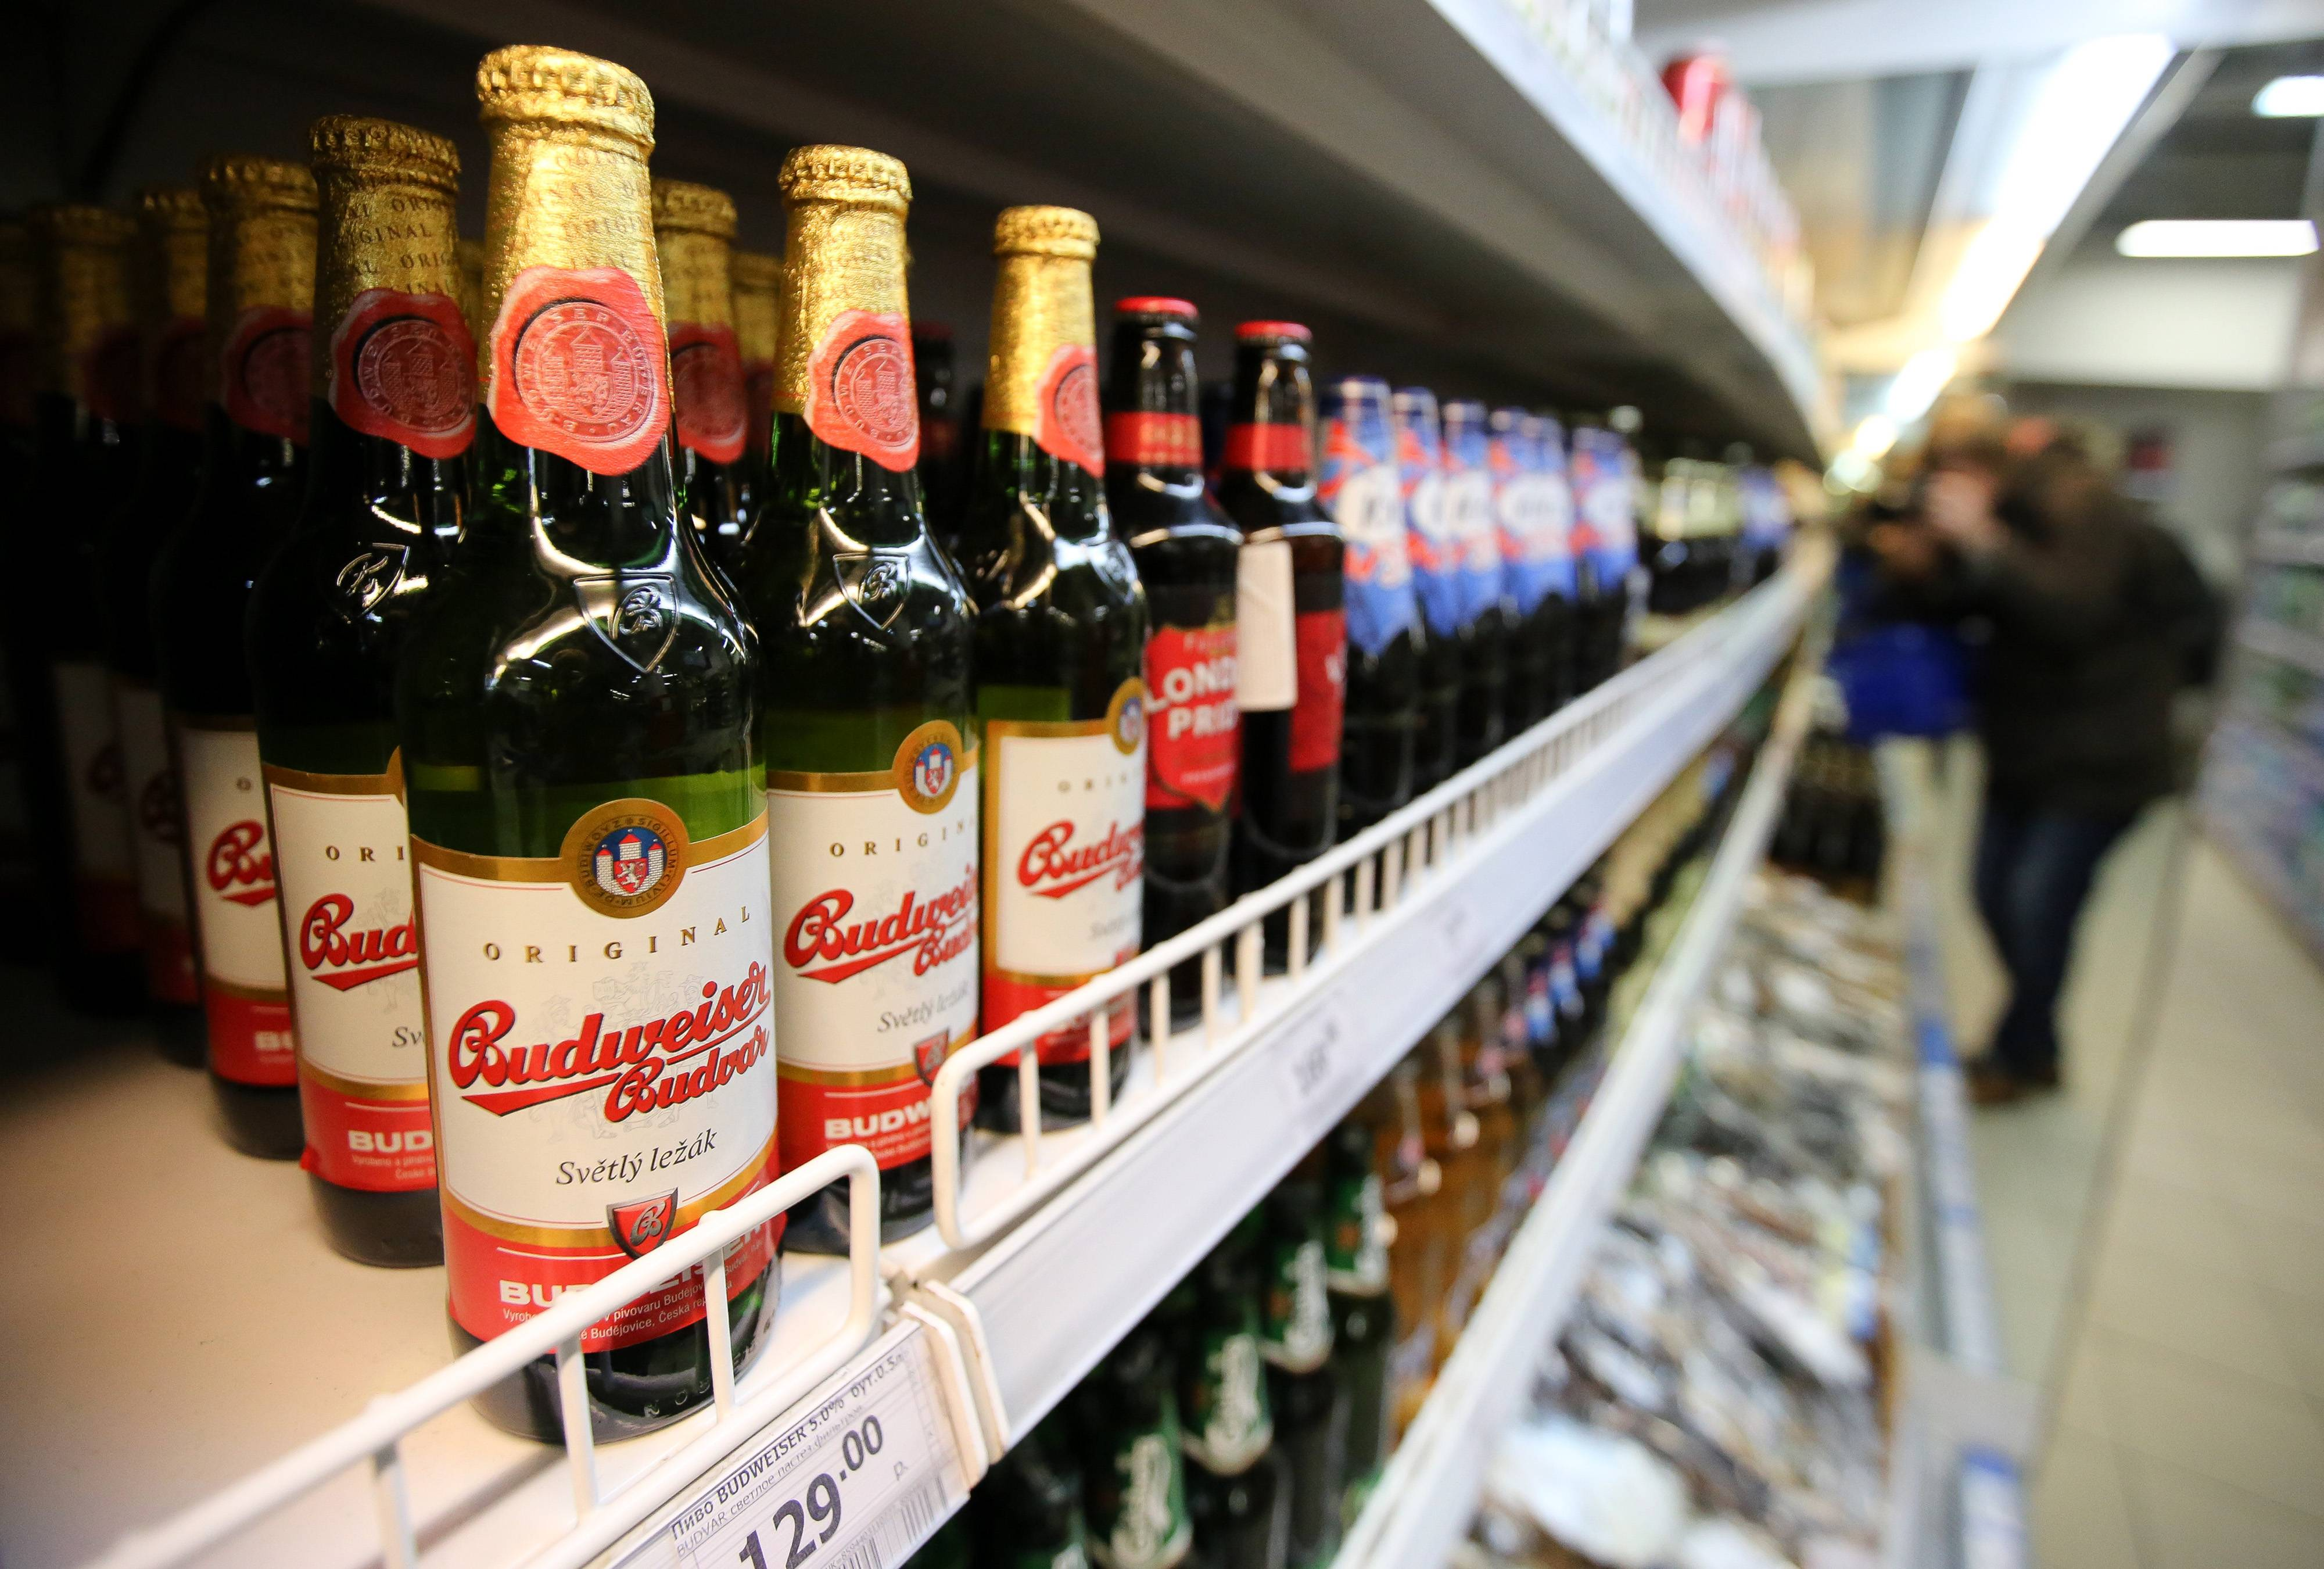 Bottles of Budvar beer on sale in Moscow. As the summer season begins to sizzle, Czech brewers are lining up against other international brands to win over drinkers in former Soviet republics to the east and Asia.